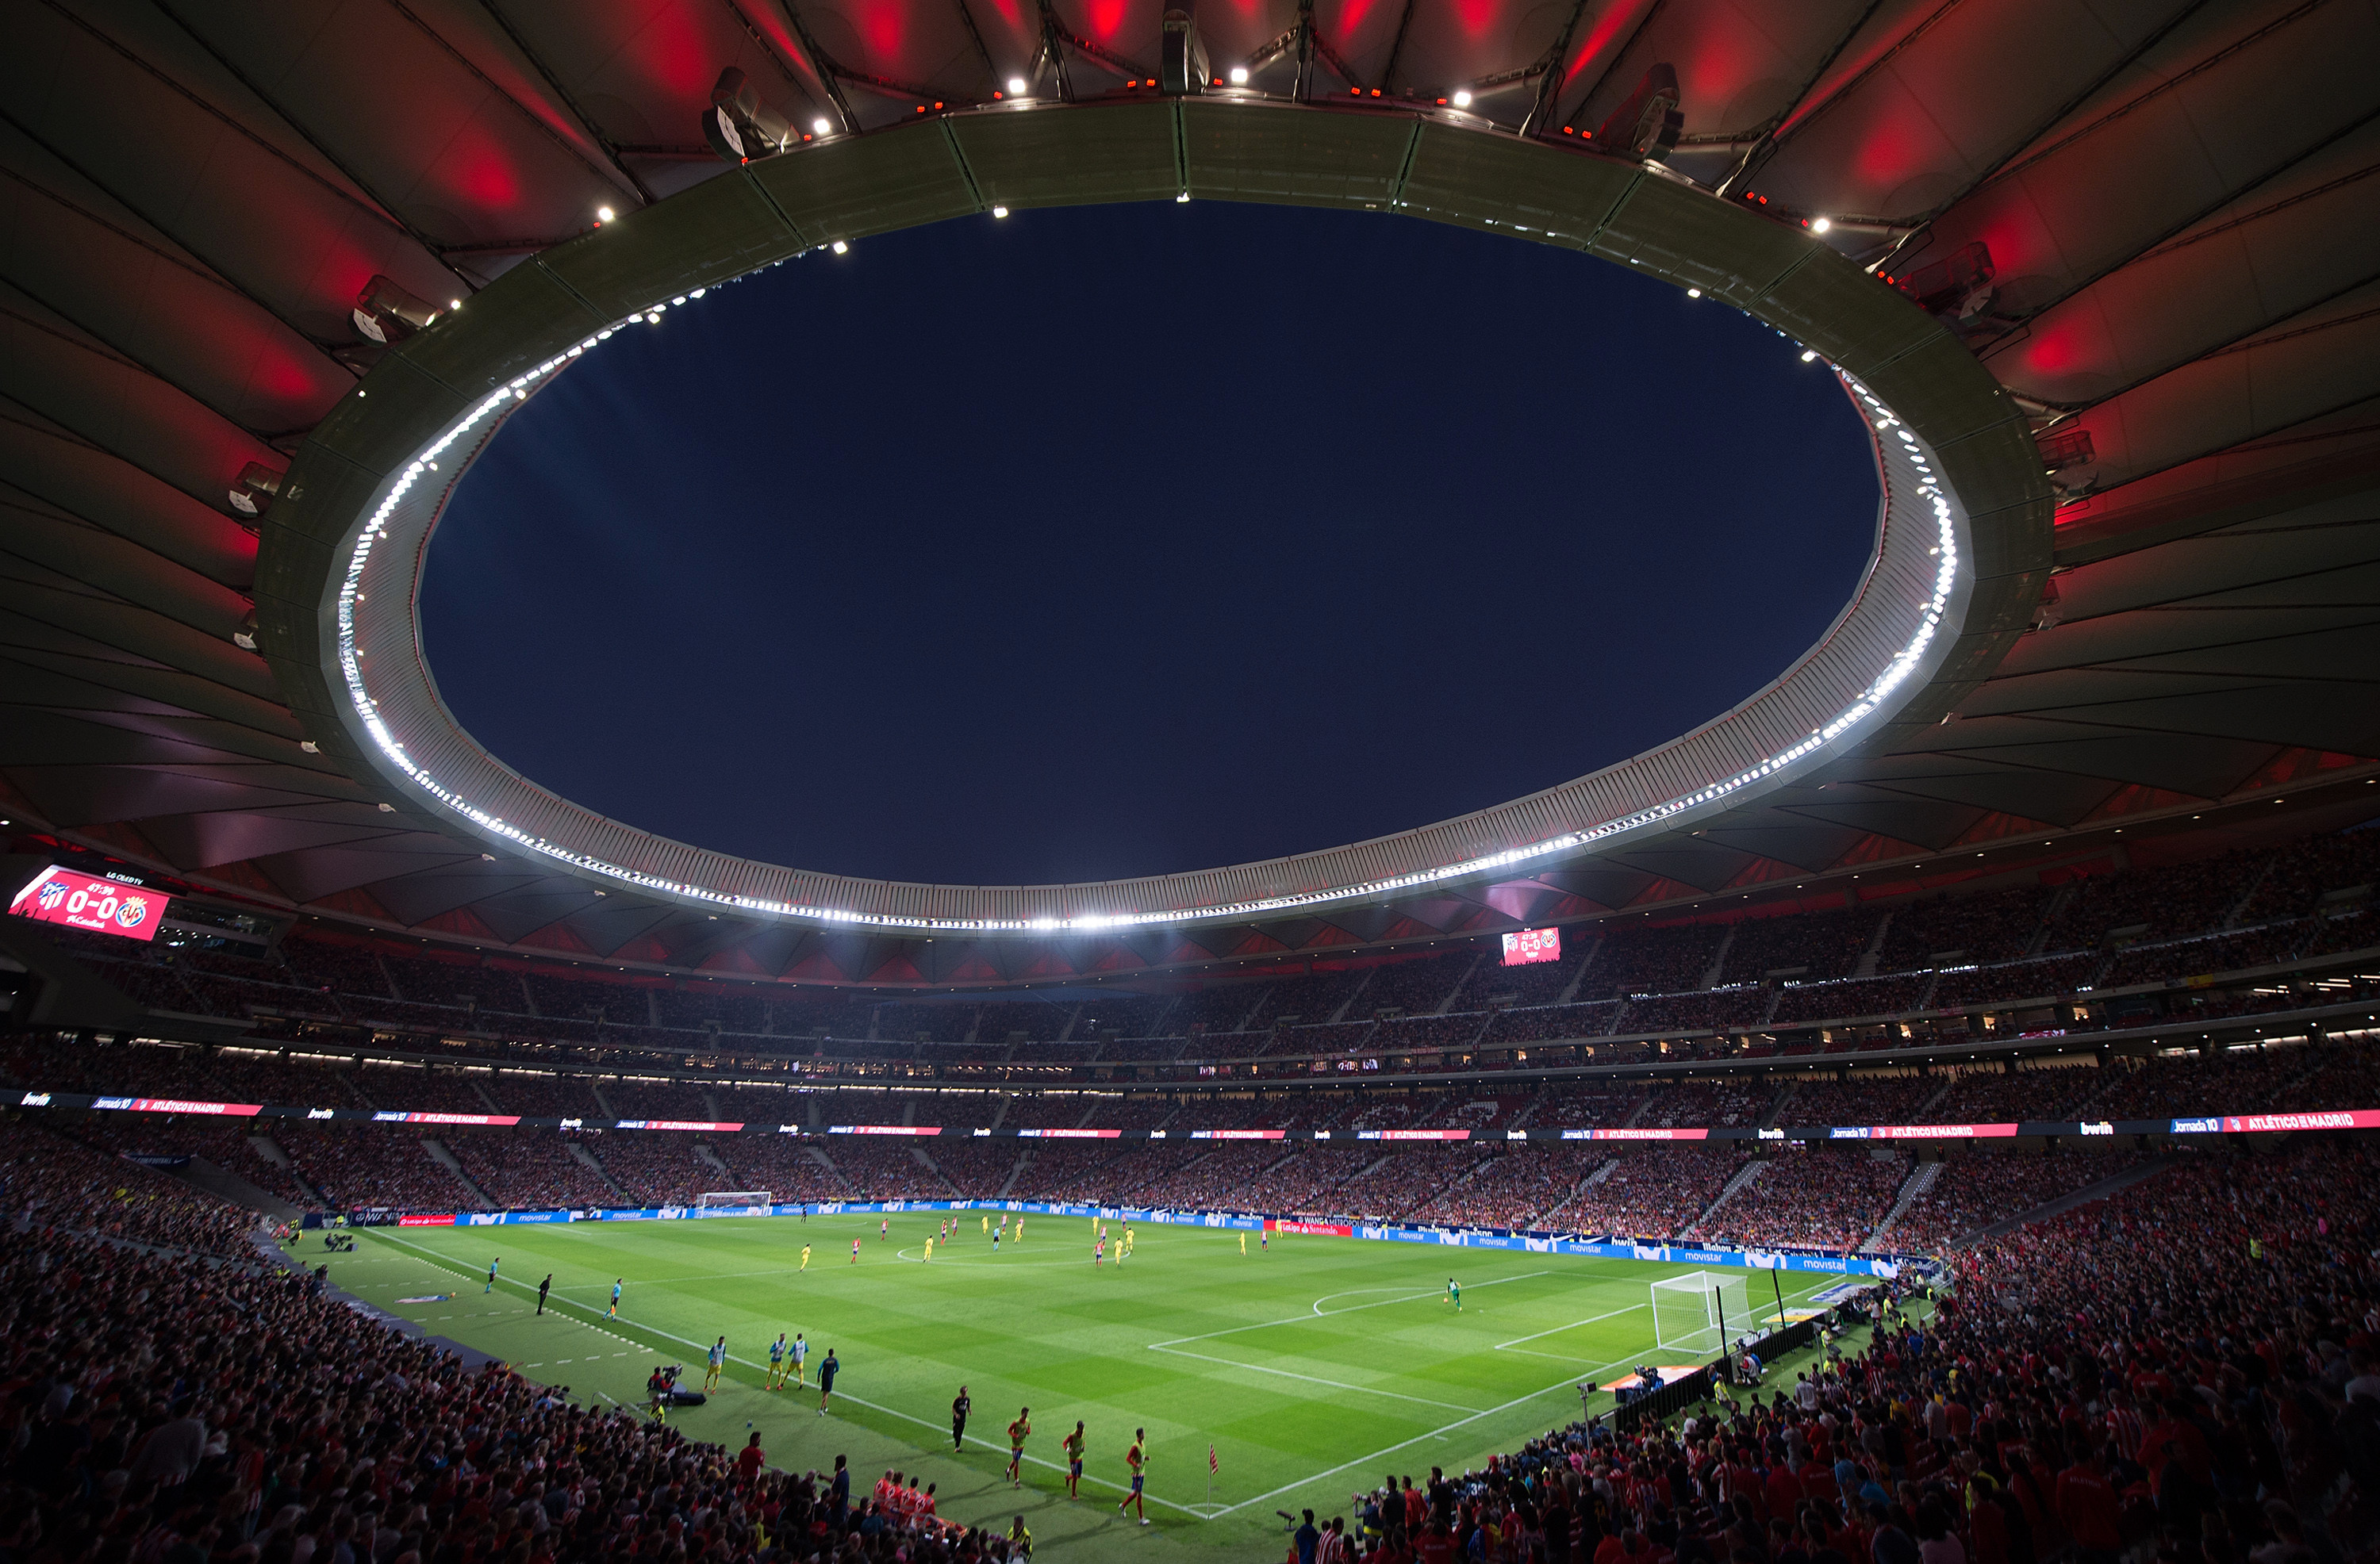 The Wanda Metropolitano in Madrid will host the Champions League final